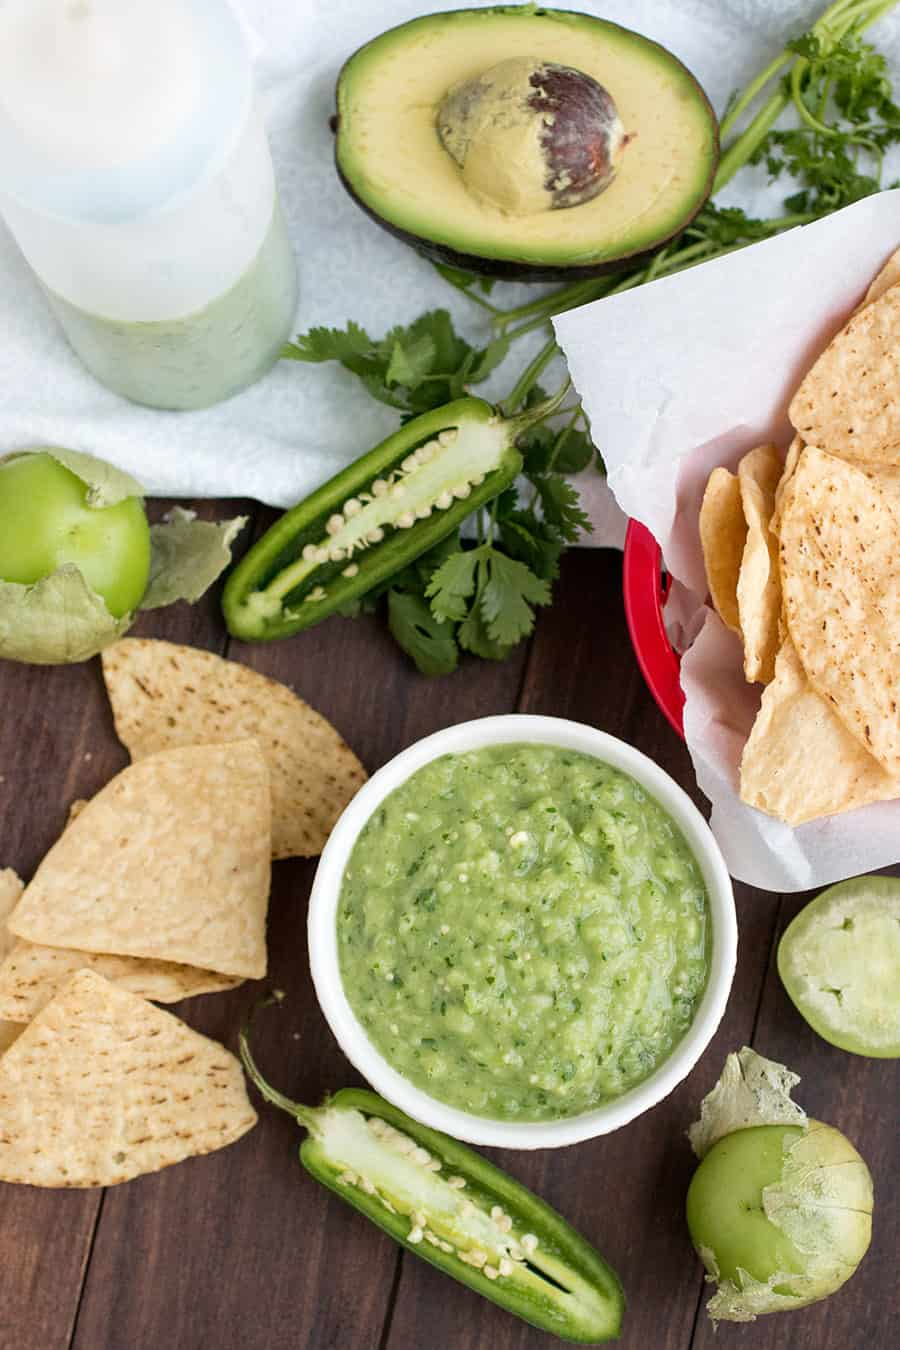 Avocado-Tomatillo Salsa Verde – Mexican Green Table Sauce